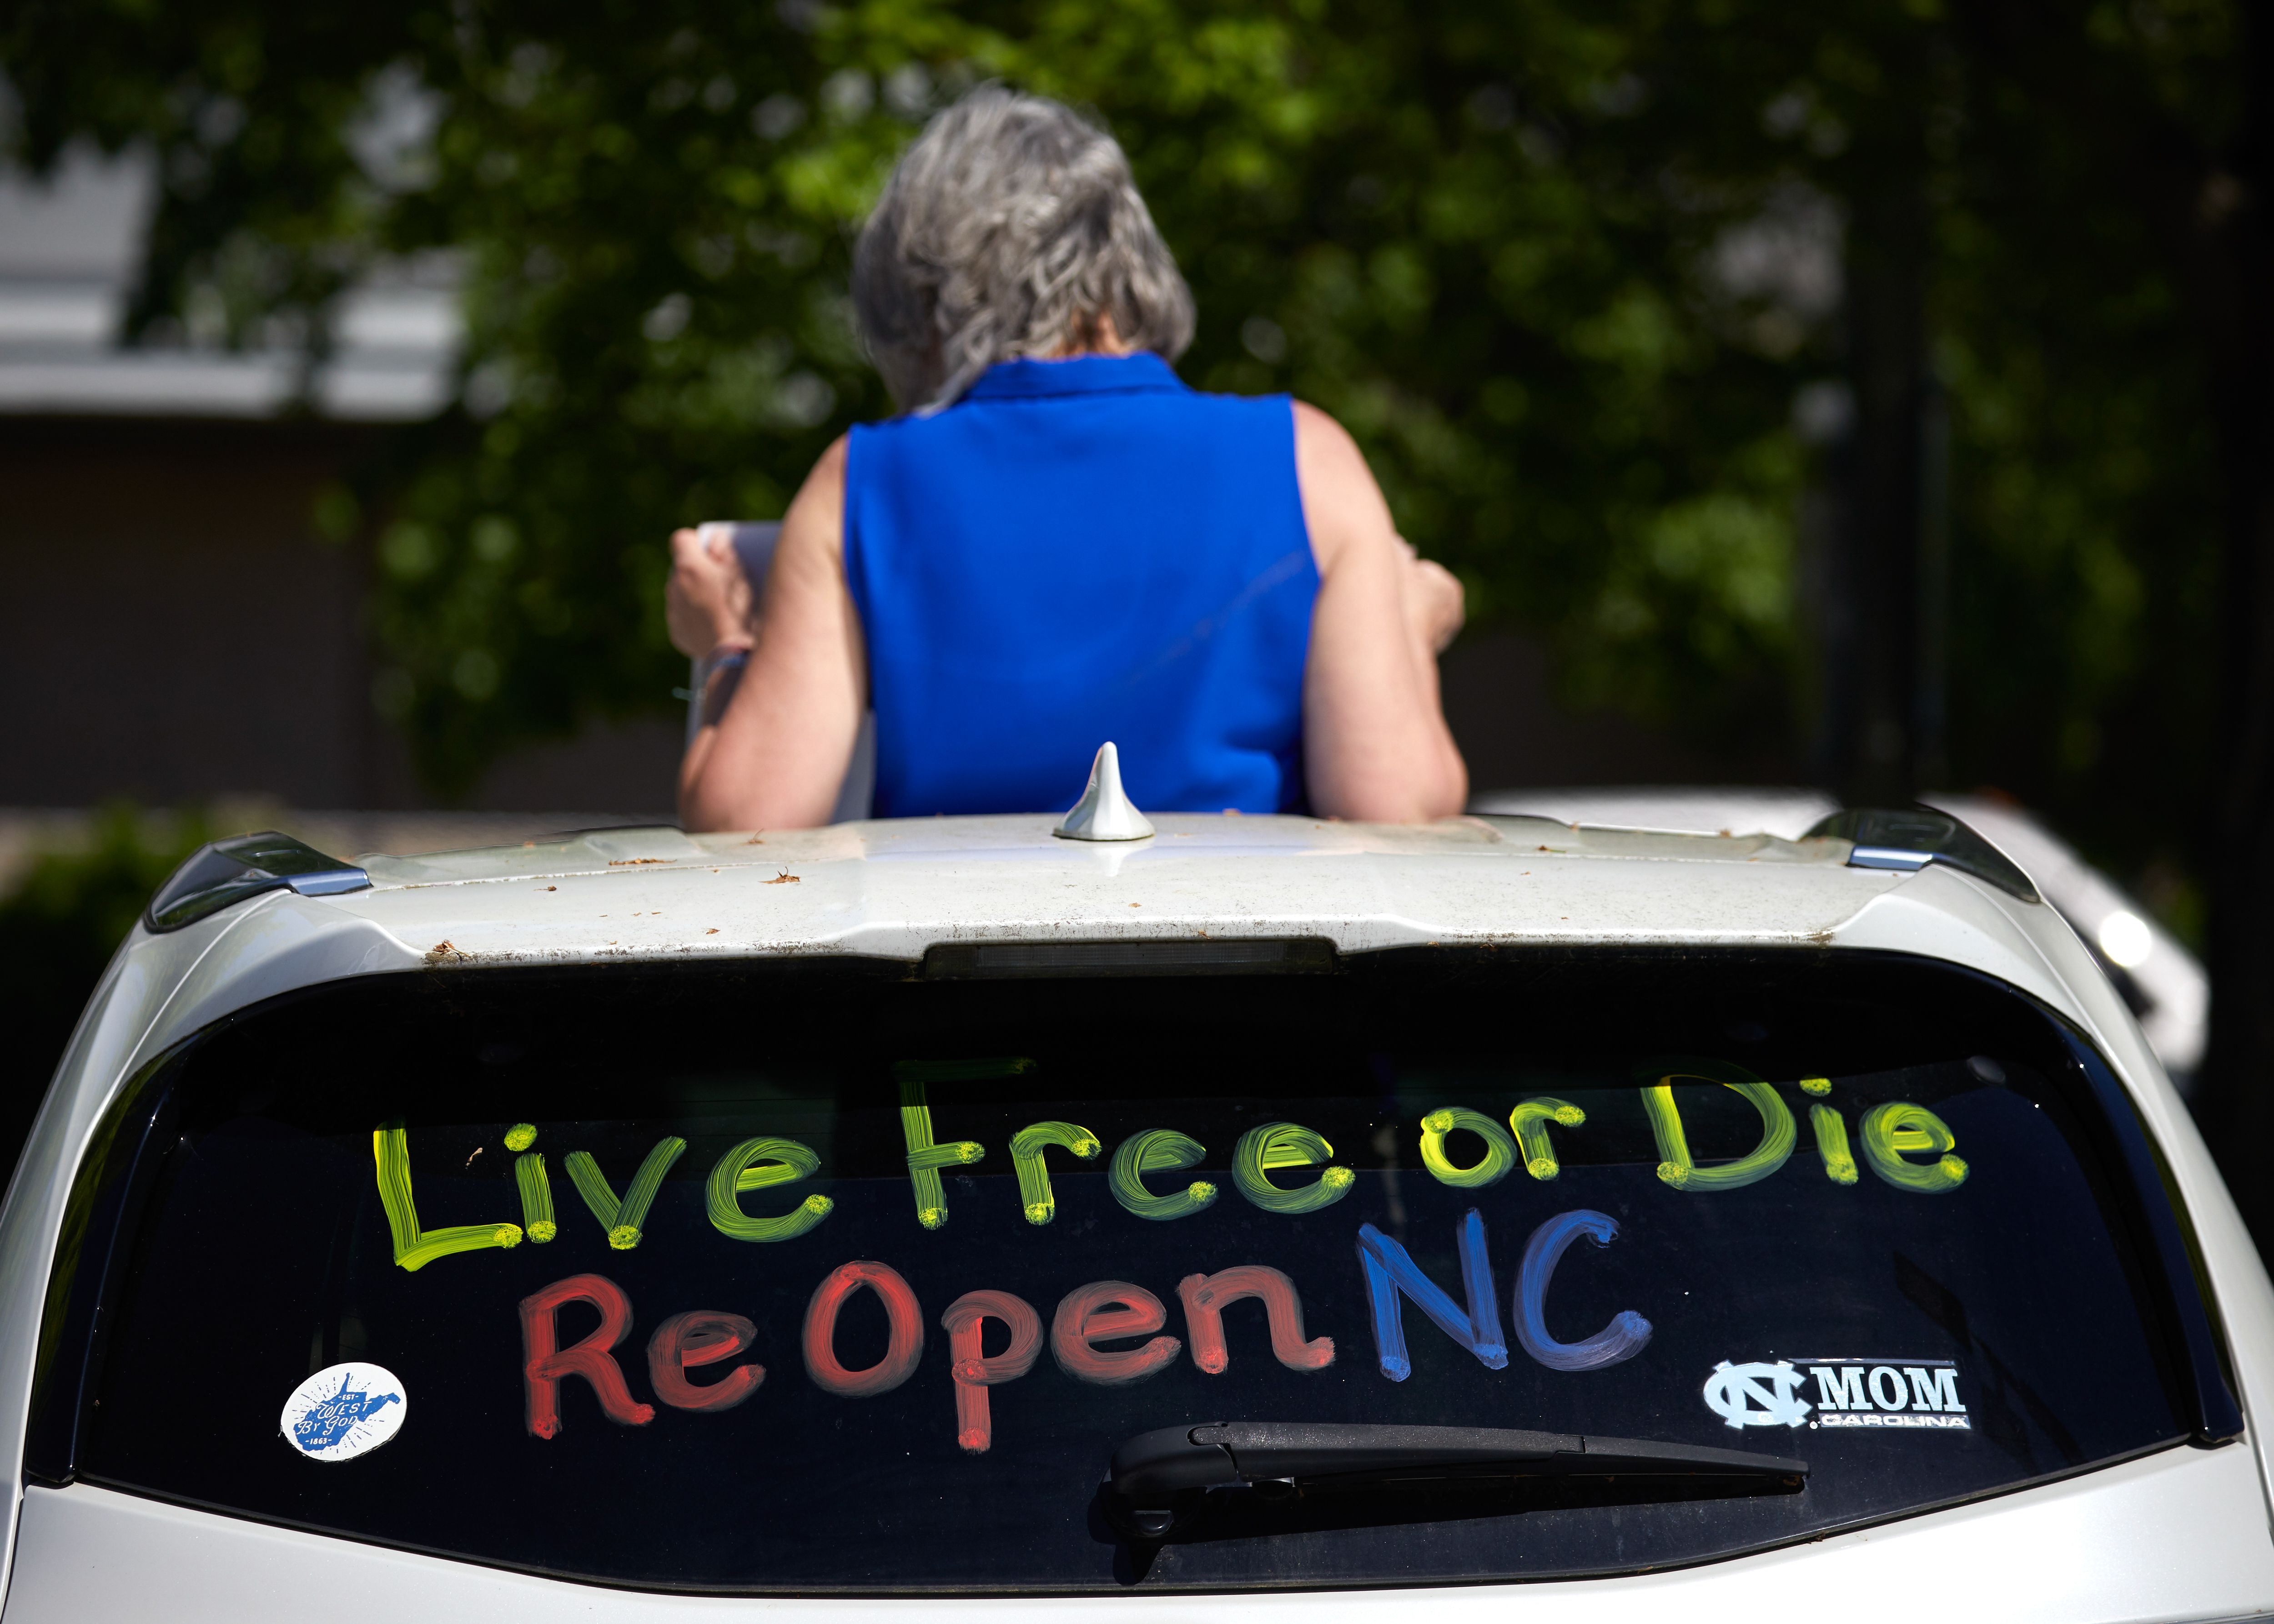 Protesters from a grassroots organization called REOPEN NC protests the North Carolina coronavirus lockdown at a parking lot adjacent to the North Carolina State Legislature in Raleigh, North Carolina, on April 14, 2020. - The group was demanding the state economy be opened up no later than April 29. (Photo by Logan Cyrus / AFP) (Photo by LOGAN CYRUS/AFP via Getty Images)